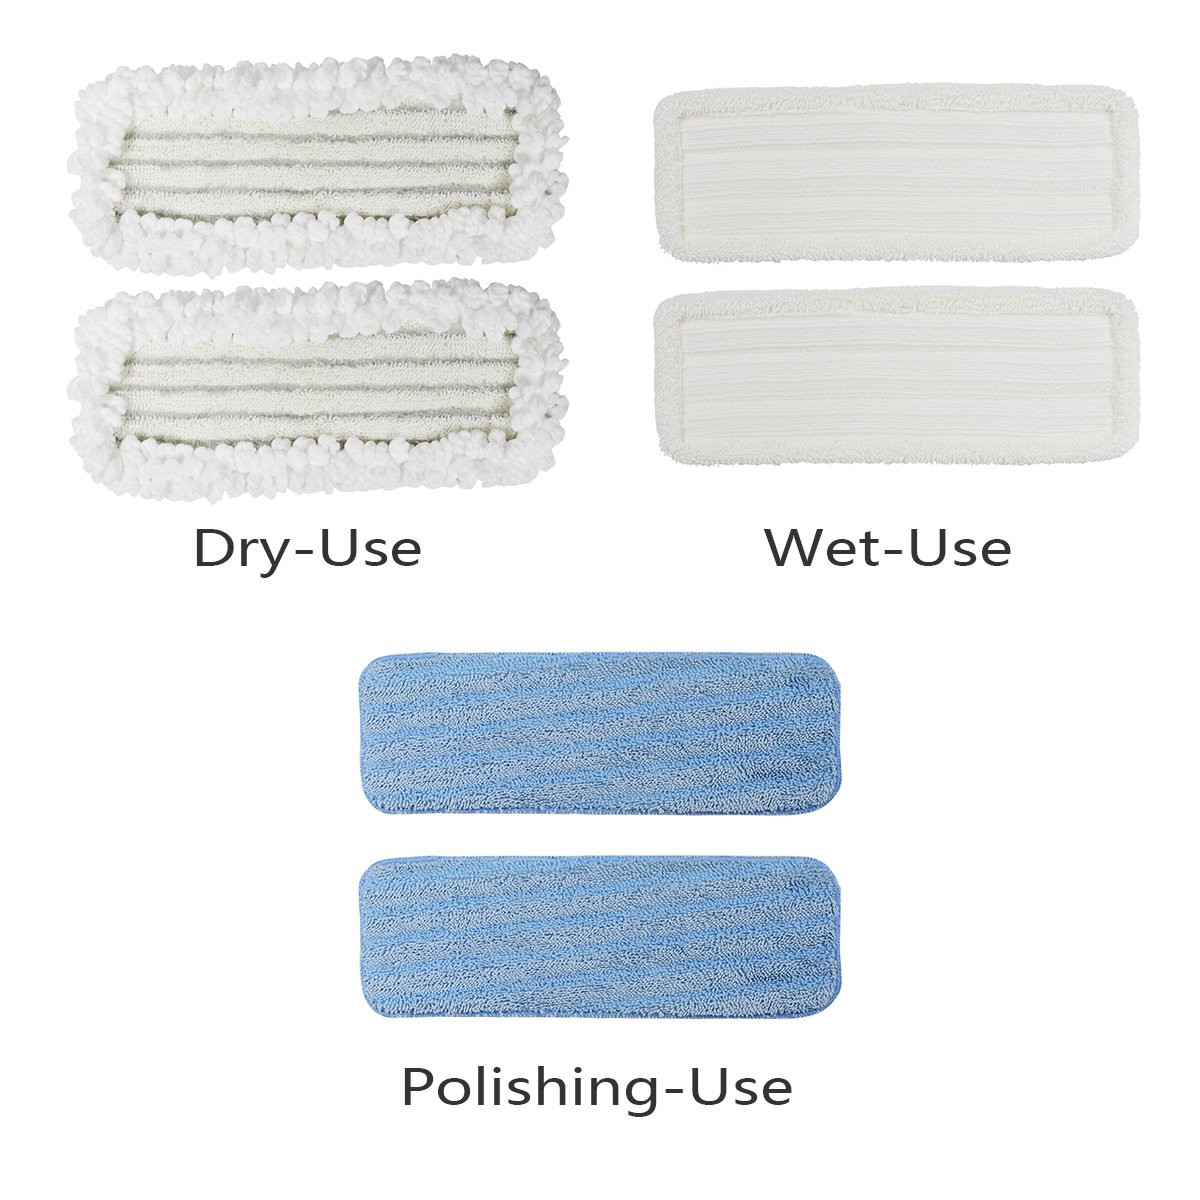 Le Coucou SCD1-MP Refill Replacement for D1 Mop Wet, Dry, Polish Mop Head Variety Pads (3 pack)